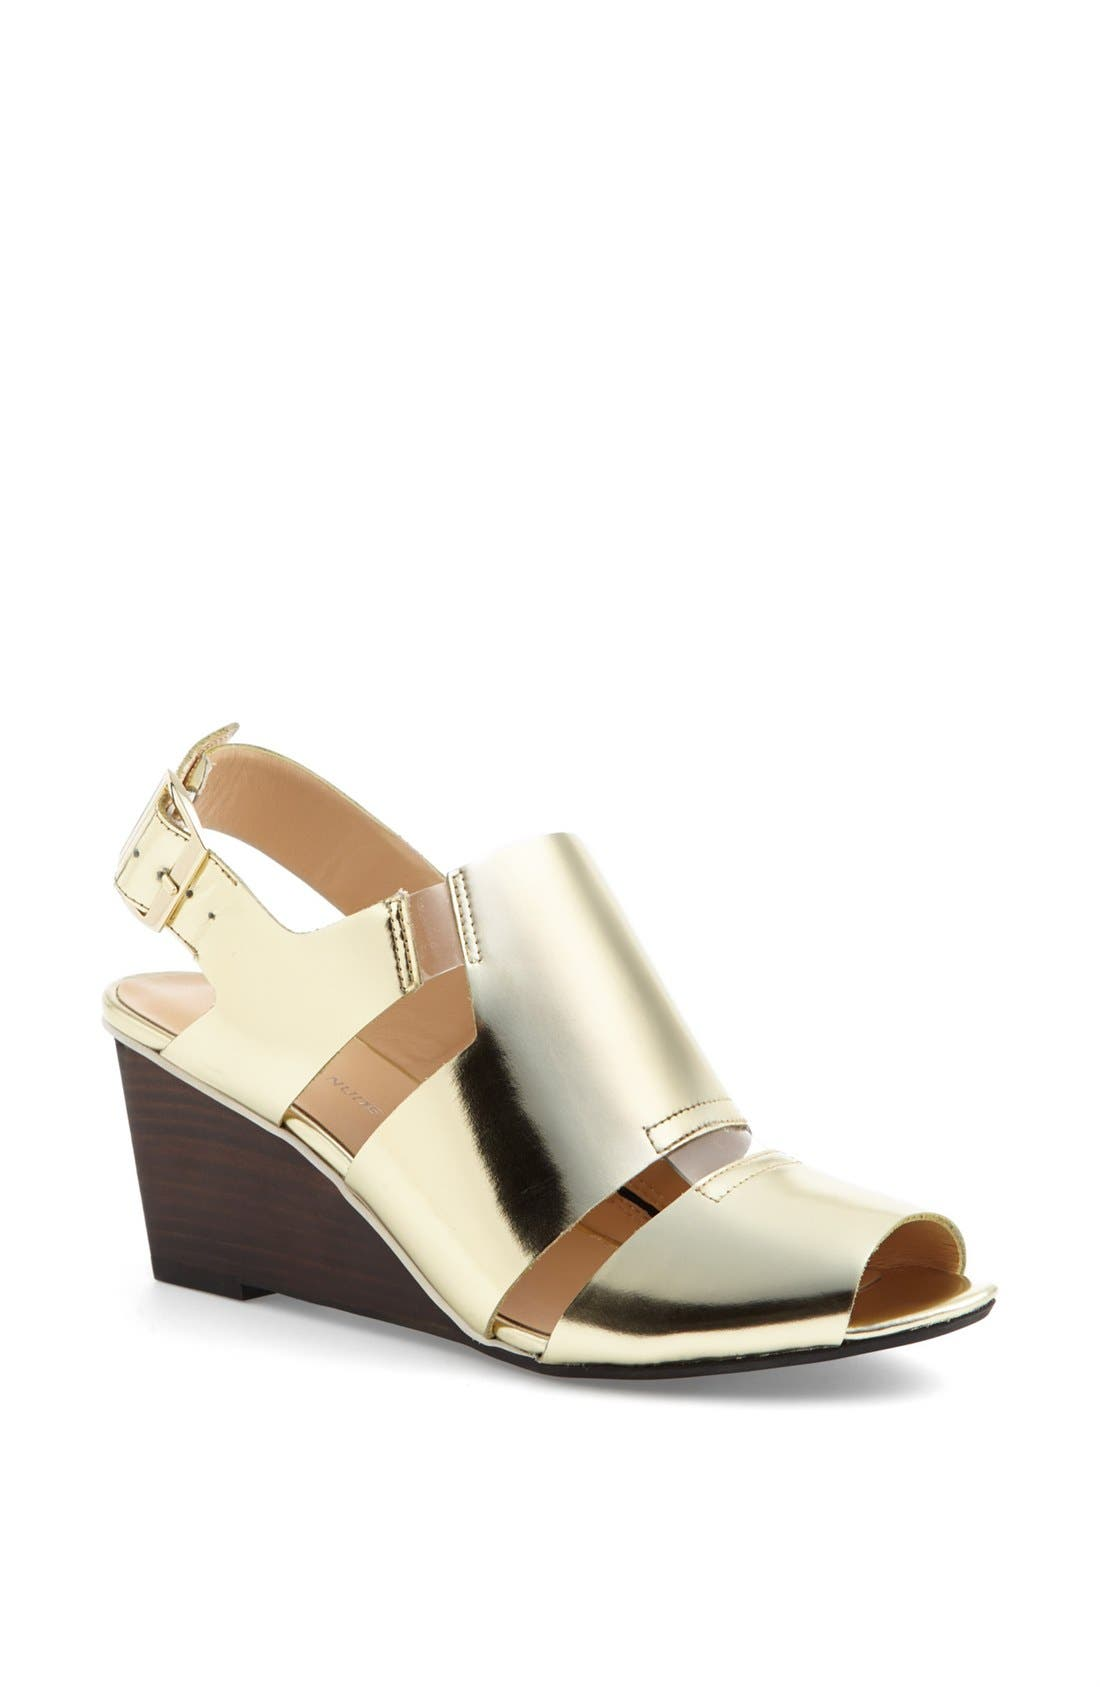 UNITED NUDE COLLECTION 'Kim' Sandal, Main, color, 710